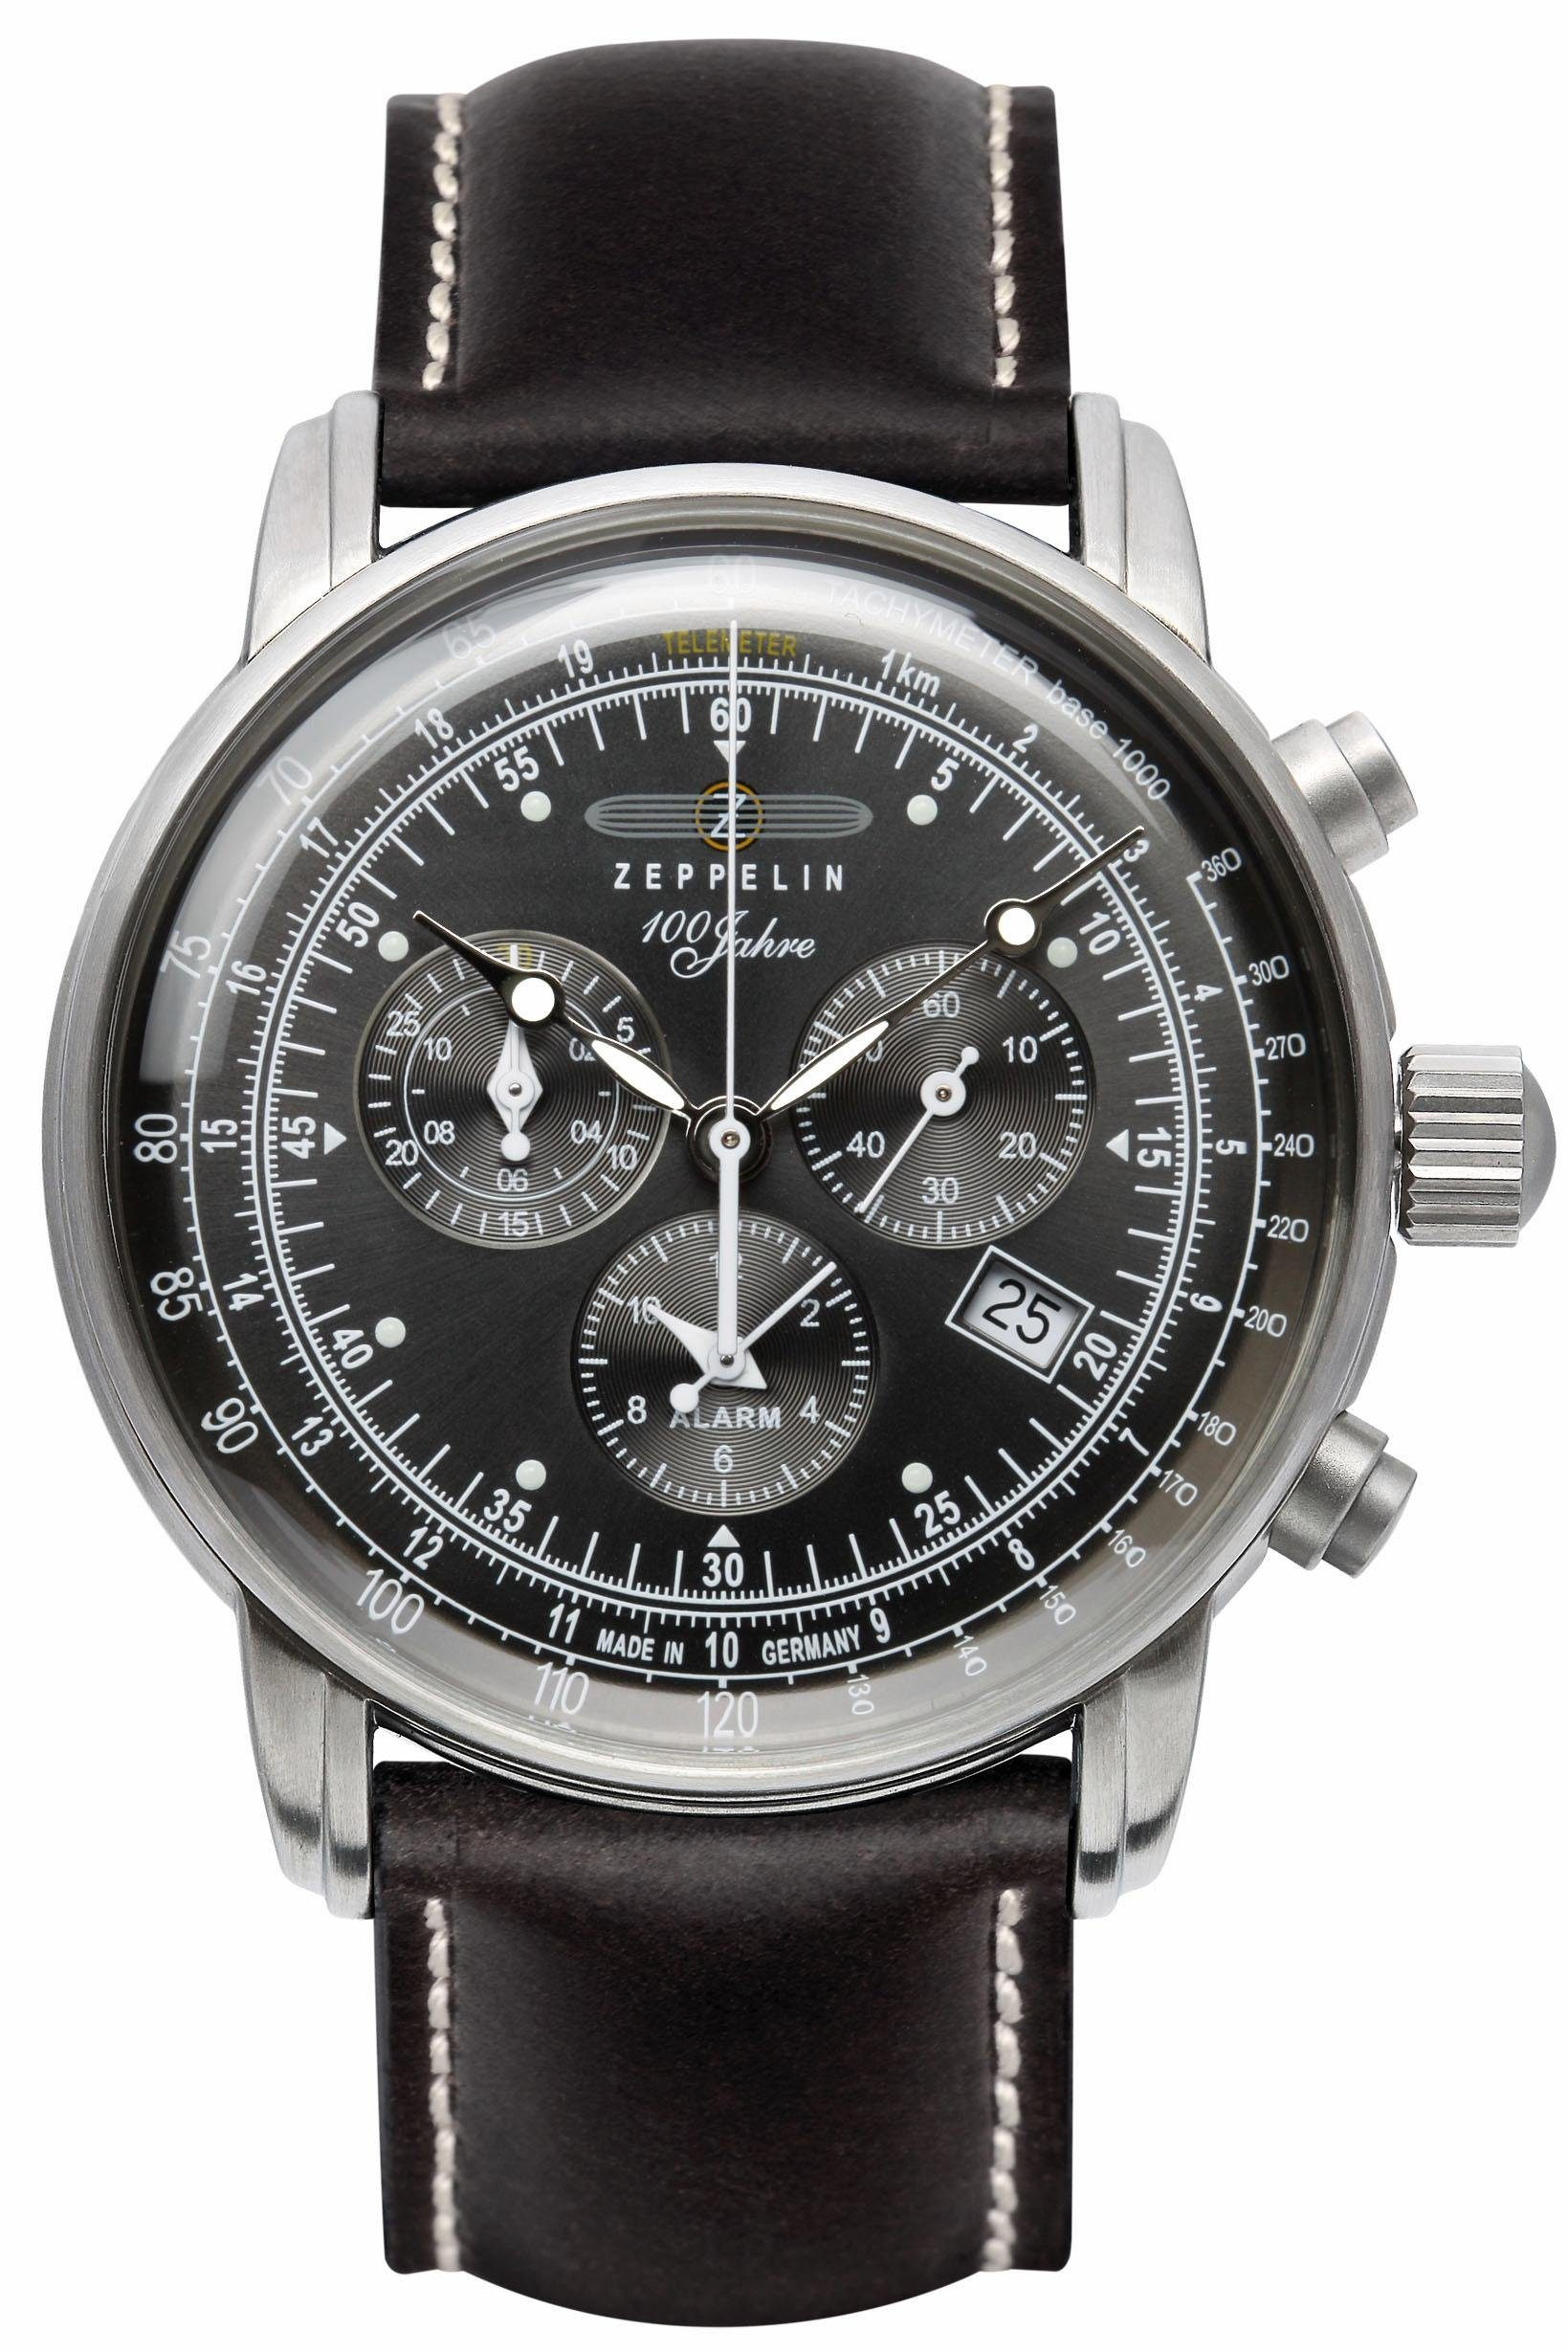 ZEPPELIN Chronograph »100 Jahre Zeppelin, 7680-2«, Made in Germany